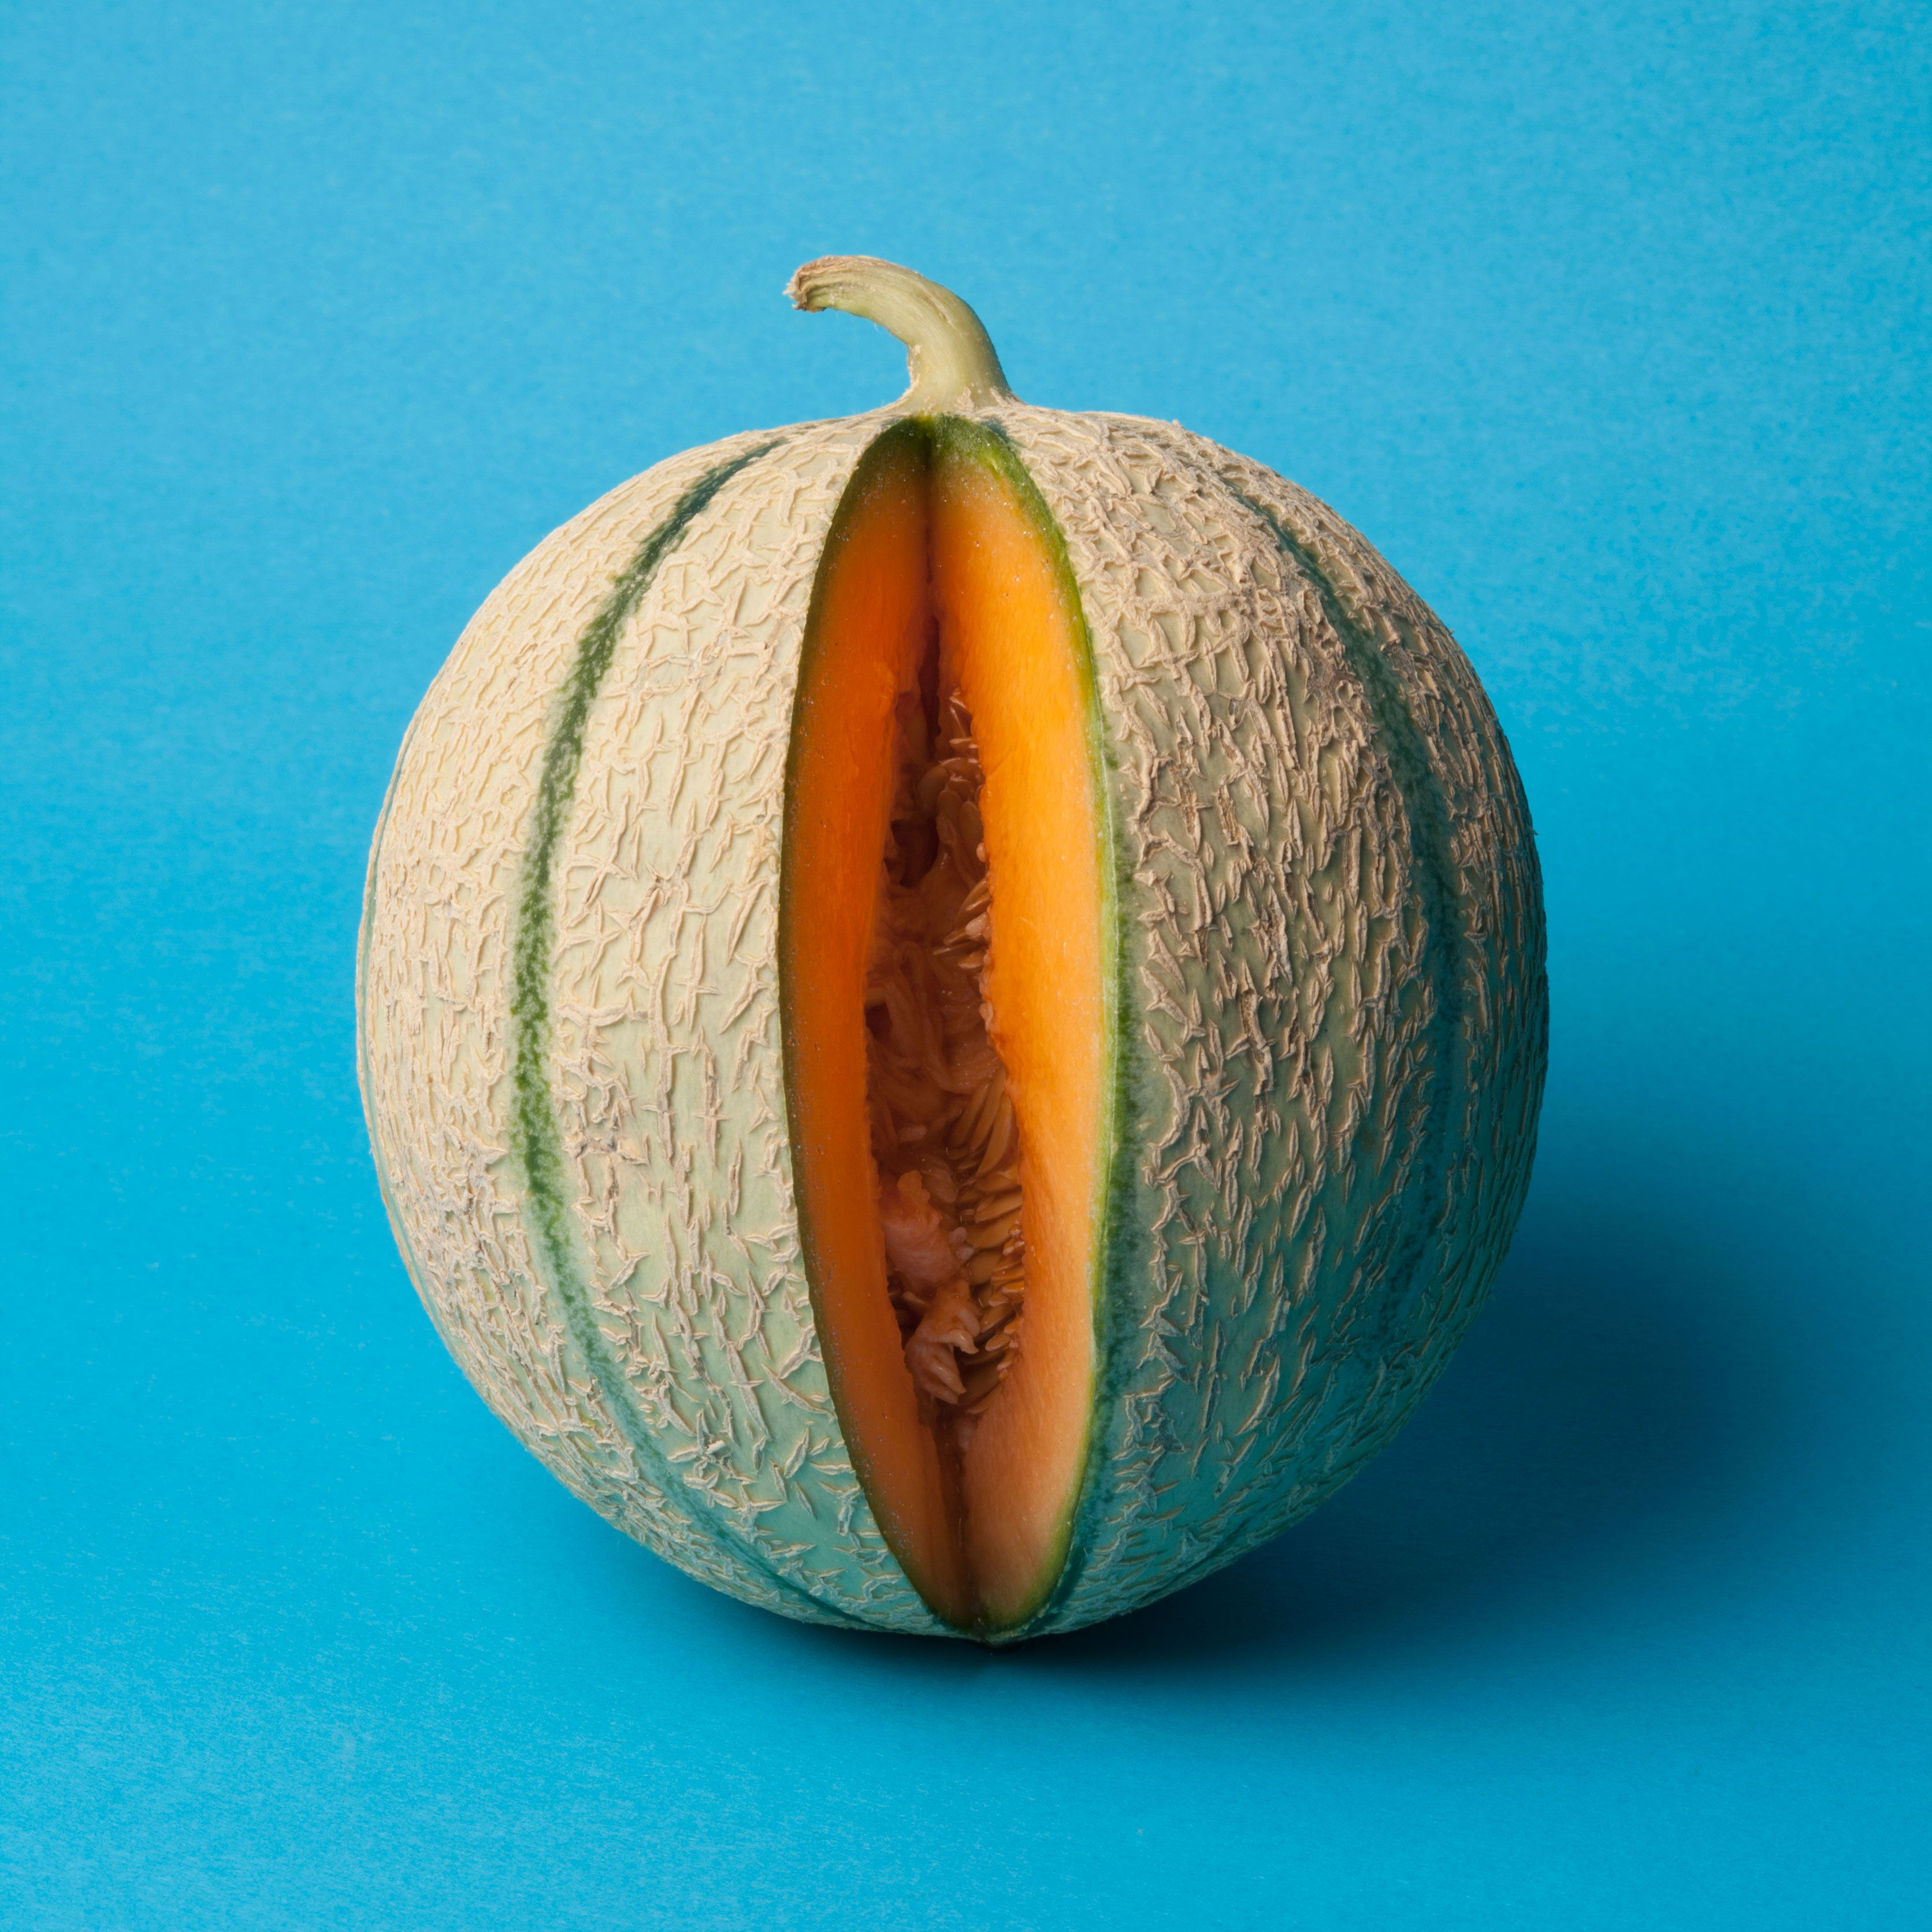 "<p><span>Weak knees: fun when you're in love, troublesome the rest of the time. Cantaloupe is a good source of potassium, which keeps bones dense and may help <a href=""http://www.redbookmag.com/body/health-fitness/g3934/what-doctors-tell-their-friends-about-bones/"" target=""_blank"" data-tracking-id=""recirc-text-link"">fight osteoporosis</a>. The body uses potassium to keep your system from getting too acidic; without it, acid-neutralizing compounds get pulled from the bones instead, reducing their strength. One cup has about as much potassium as a large banana.</span></p><p><strong data-verified=""redactor"" data-redactor-tag=""strong"">Try this: </strong><span>Cut a cantaloupe into cubes and toss with 4 oz mozzarella balls, 1/4 cup fresh basil, 3 Tbsp extra-virgin olive oil, and 11/2 Tbsp balsamic vinegar. Serve as a refreshing side salad with grilled chicken or pork.</span></p><p><span><strong data-verified=""redactor"" data-redactor-tag=""strong"">RELATED: <a href=""http://www.redbookmag.com/food-recipes/g4132/foods-high-in-potassium/"" target=""_blank"" data-tracking-id=""recirc-text-link"">10 High-Potassium Foods to Add Into Your Diet ASAP</a><span class=""redactor-invisible-space""><a href=""http://www.redbookmag.com/food-recipes/g4132/foods-high-in-potassium/""></a></span></strong><br></span></p>"